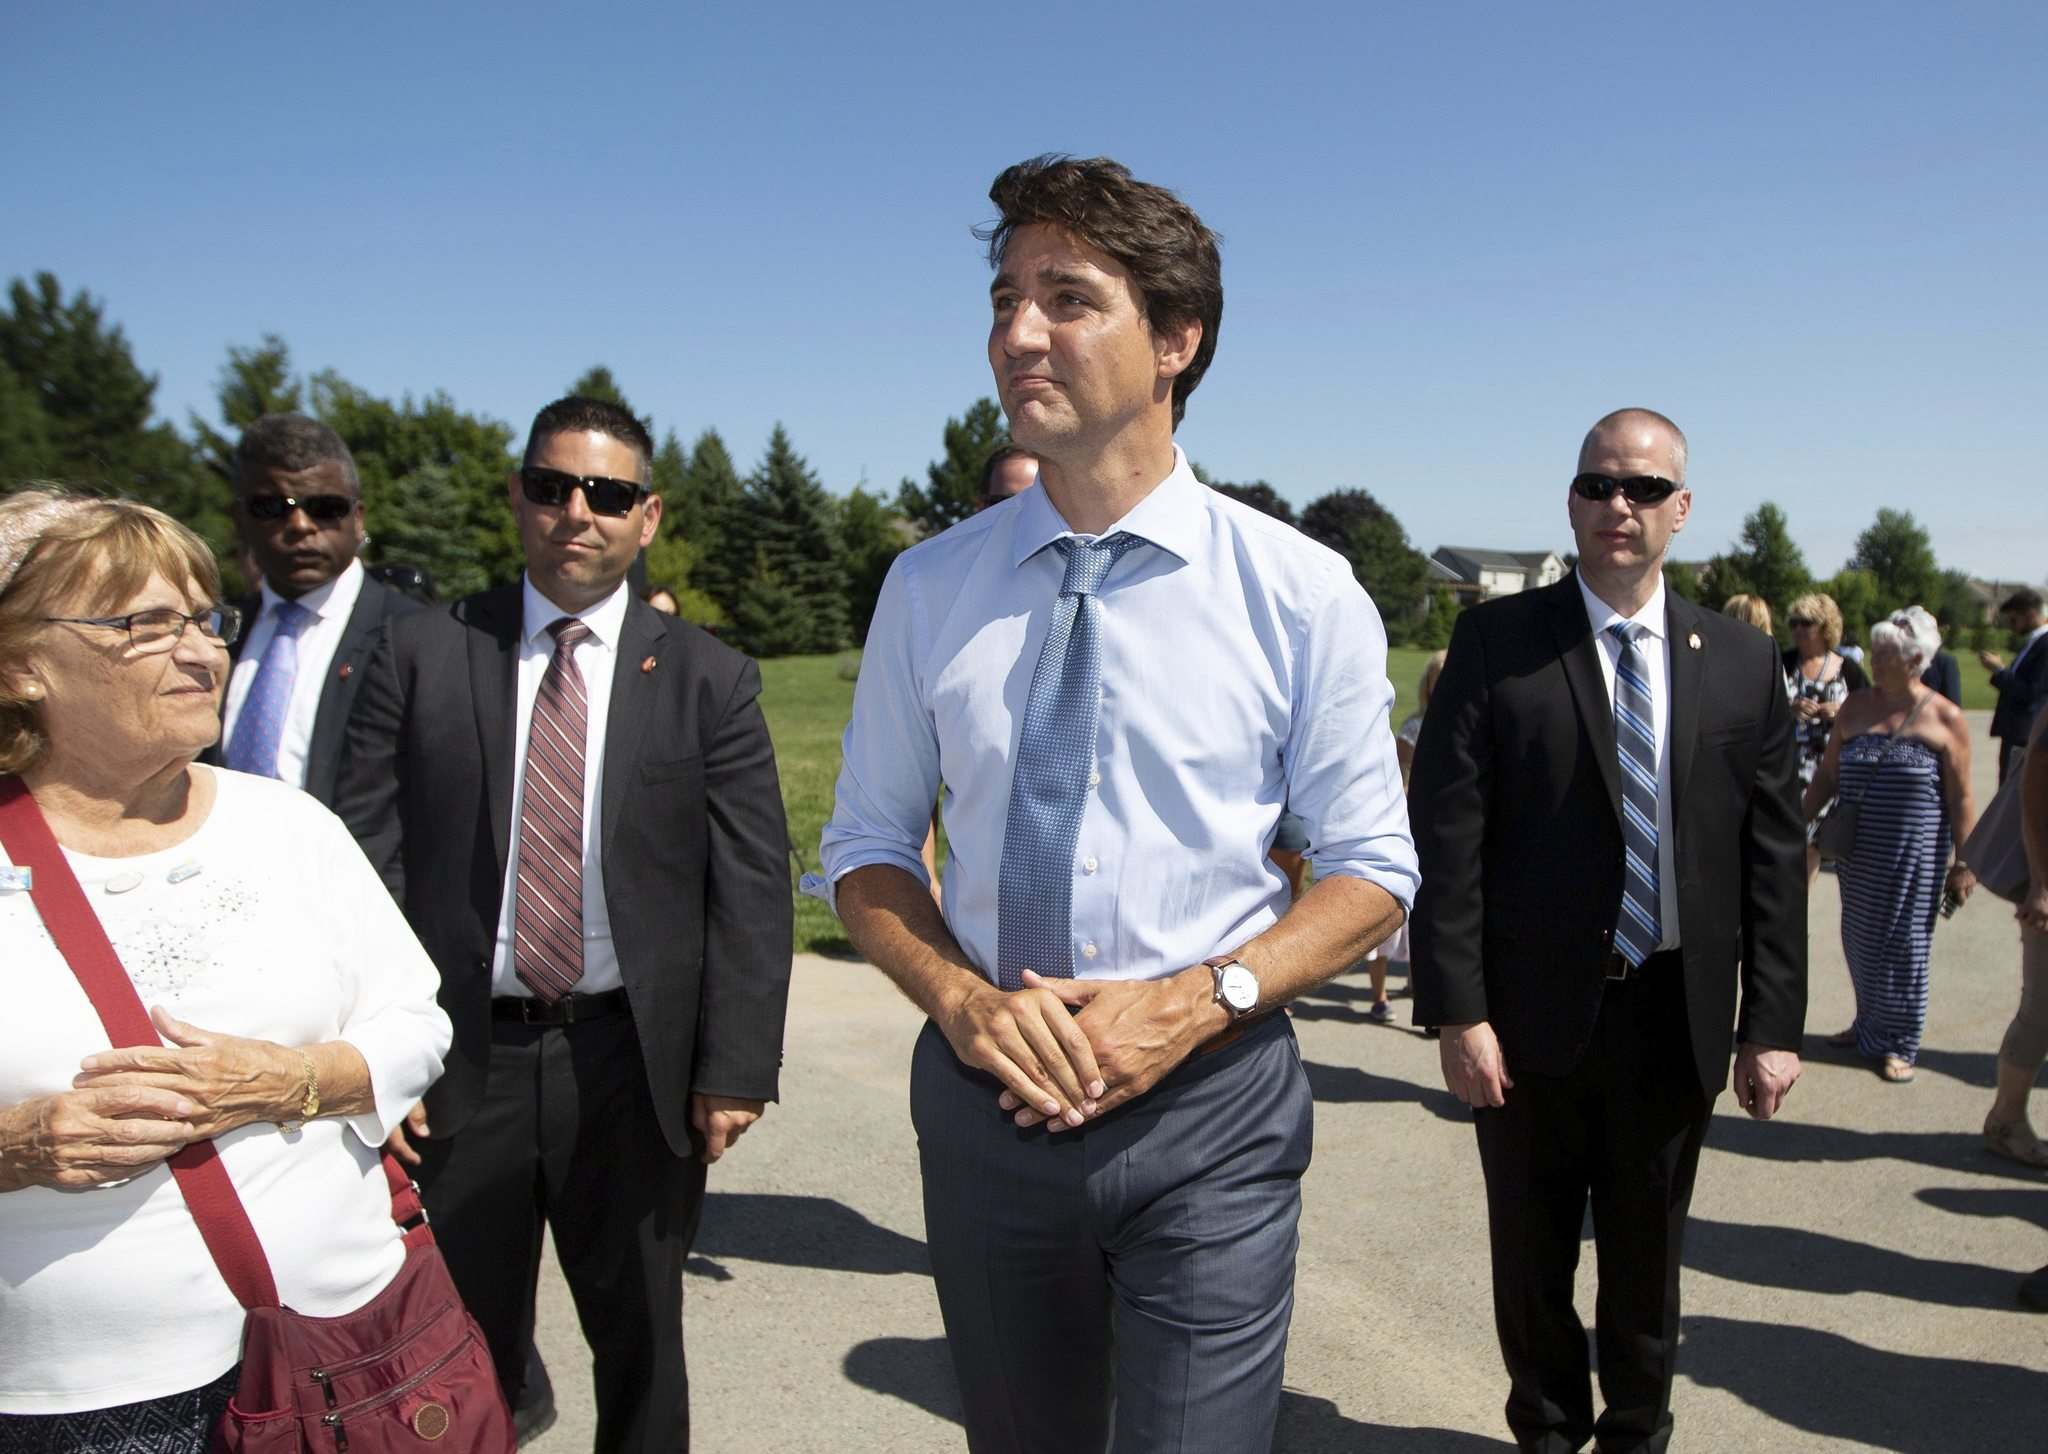 Prime Minister Justin Trudeau probably thought the issue had run its course and the scandal was finally behind him. (Peter Power / The Canadian Press files)